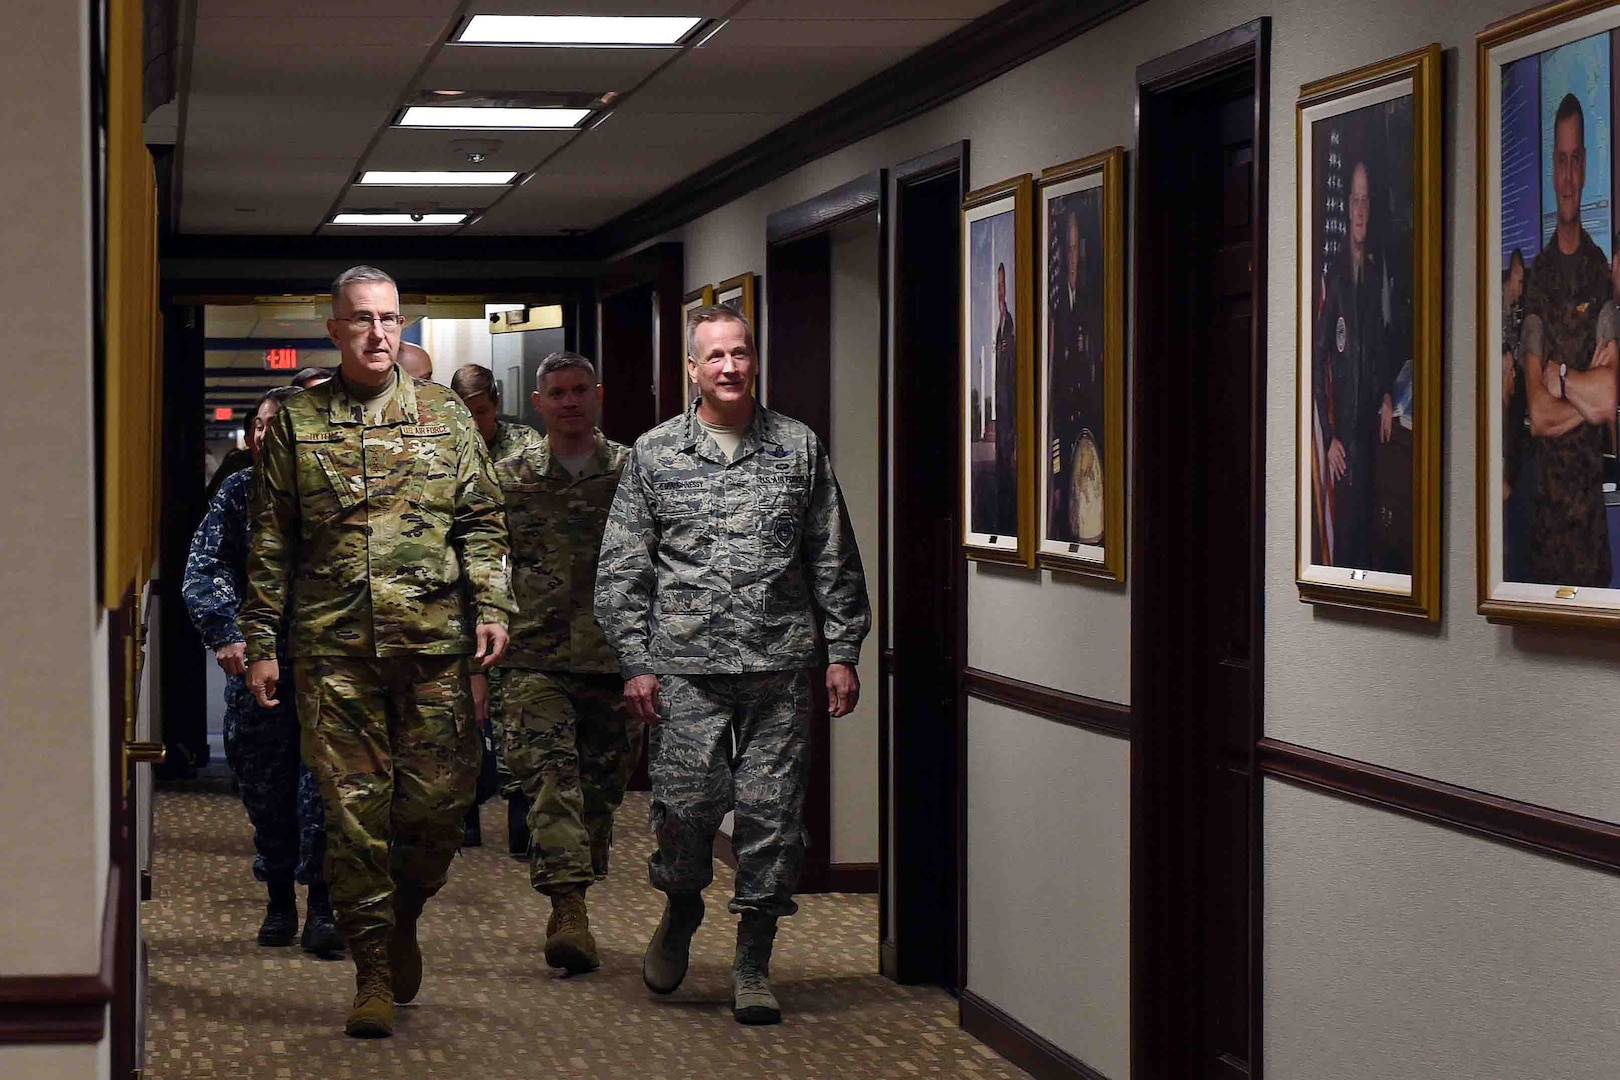 U.S. Air Force Gen. John Hyten, commander of U.S. Strategic Command (USSTRATCOM), escorts U.S. Air Force Gen. Terrence O'Shaughnessy, commander of North American Aerospace Defense Command (NORAD) and U.S. Northern Command (USNORTHCOM), through USSTRATCOM headquarters, Offutt Air Force Base, Neb., Jan. 30, 2019. During his visit, O'Shaughnessy toured the command's global operations center, battle deck and new command and control facility. He also participated in discussions with Hyten and other senior leaders on the continuing collaboration between USSTRATCOM, NORAD and USNORTHCOM. USSTRATCOM has global responsibilities assigned through the Unified Command Plan that include strategic deterrence, nuclear operations, space operations, joint electromagnetic spectrum operations, global strike, missile defense, and analysis and targeting.